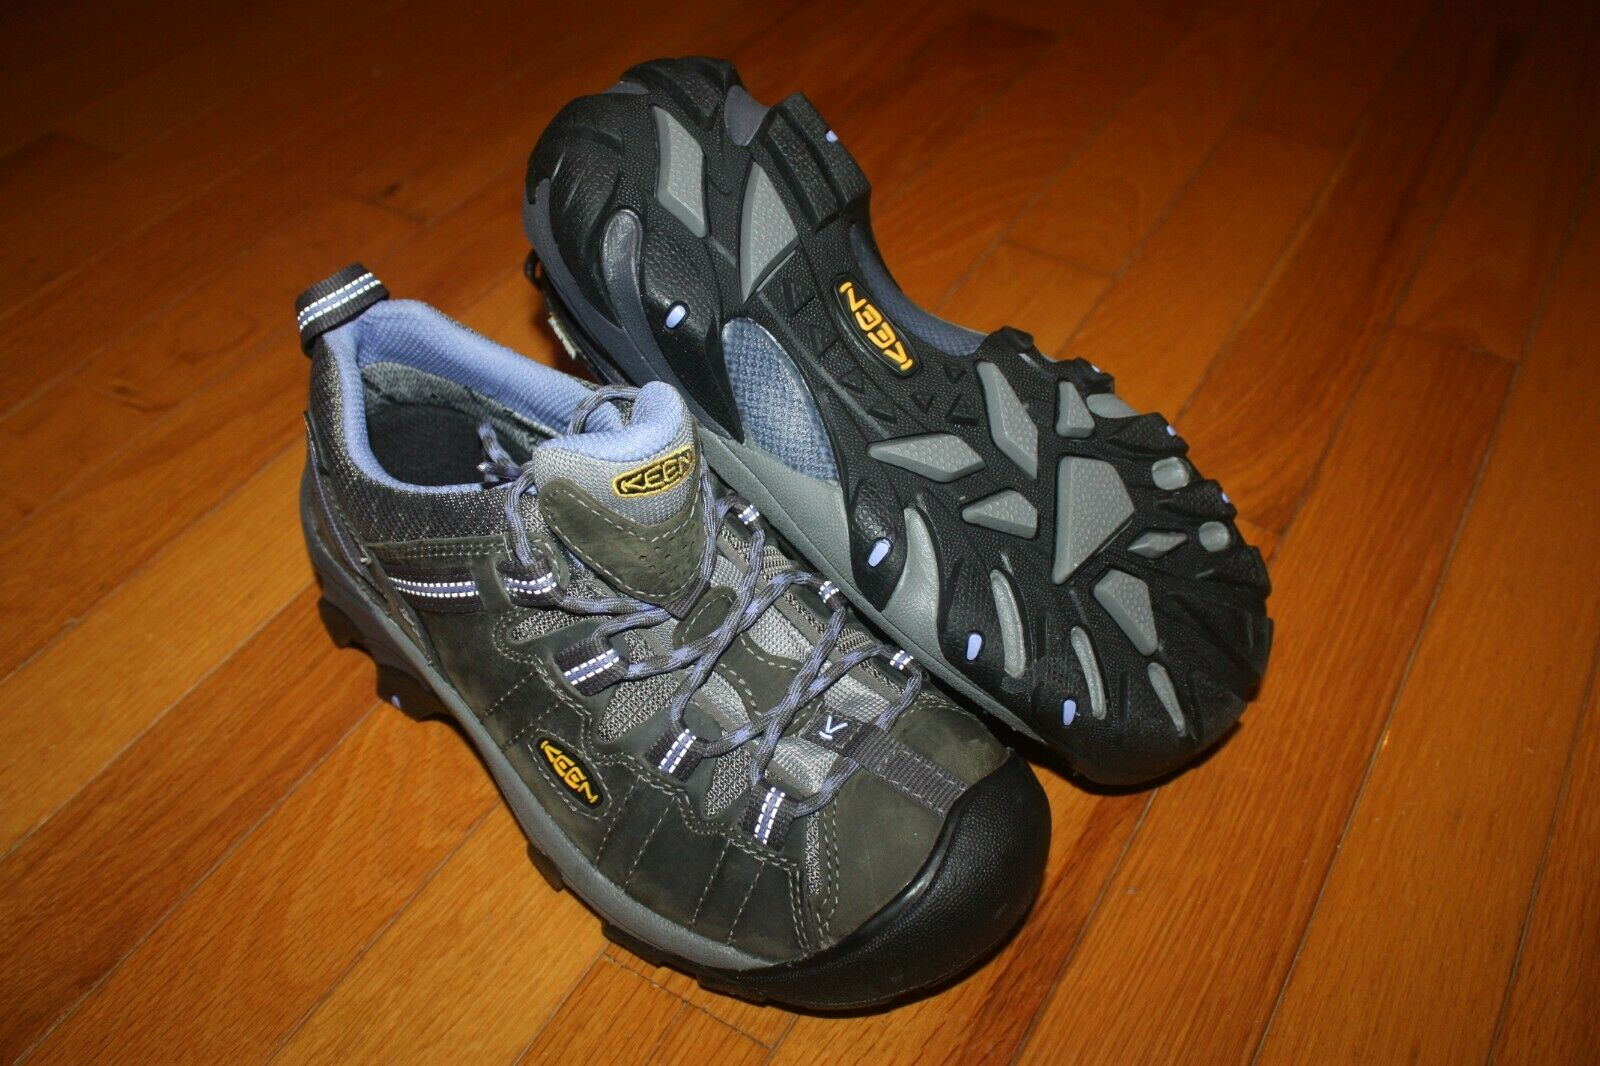 New In In In Box Keen donna Targhee II WP Hiking stivali 1013181 or 1012244 SHIP FREE US c1342f